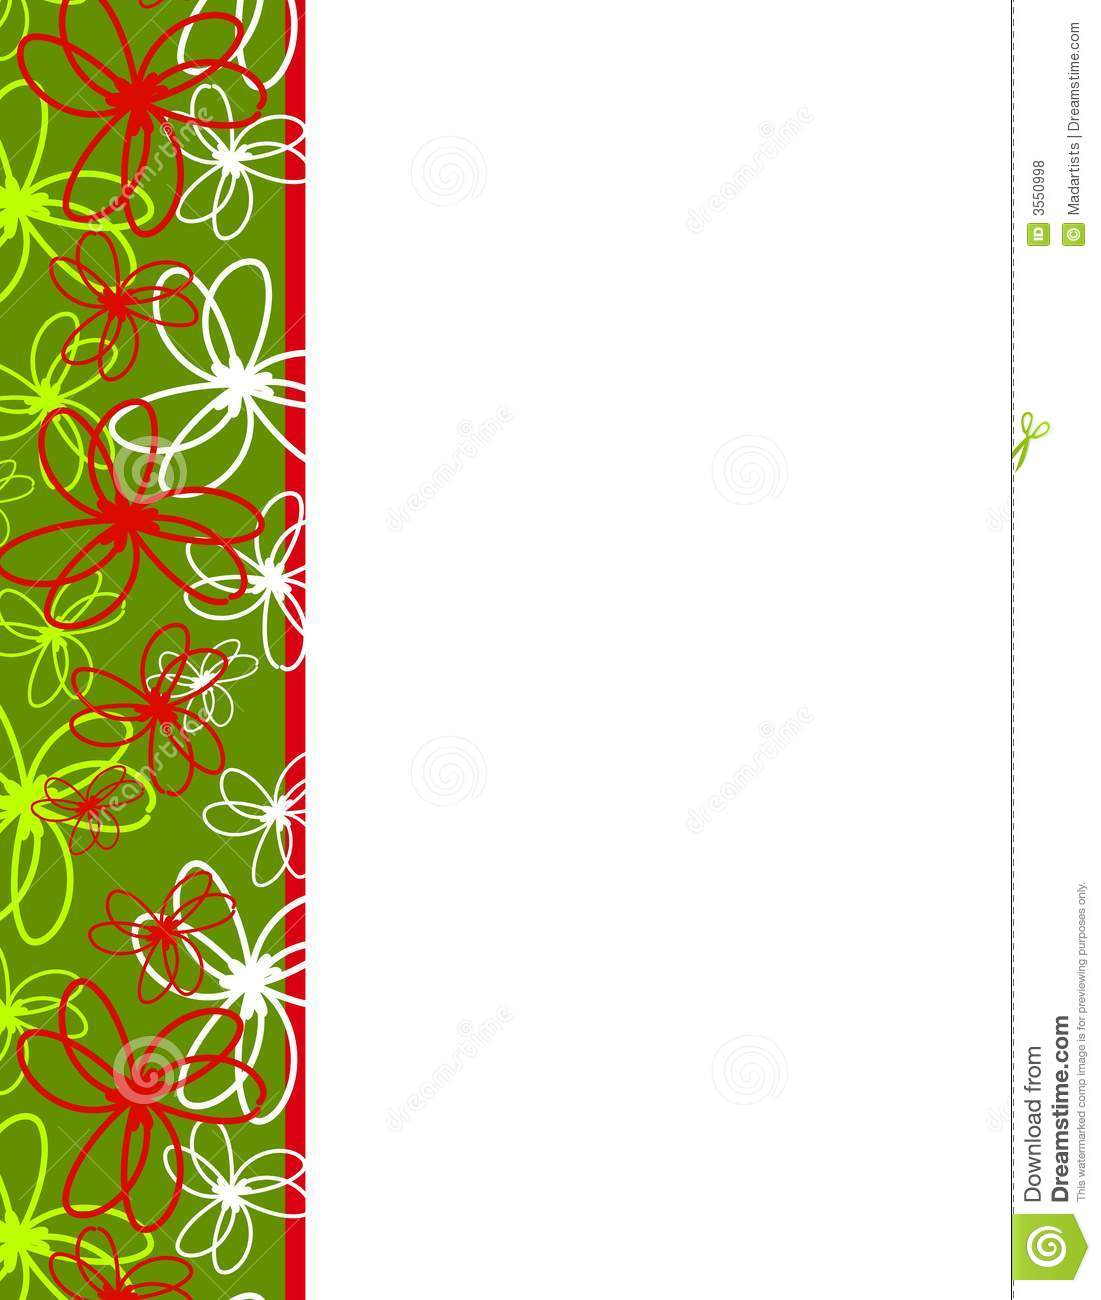 artsy ribbons christmas border stock illustration illustration of rh dreamstime com